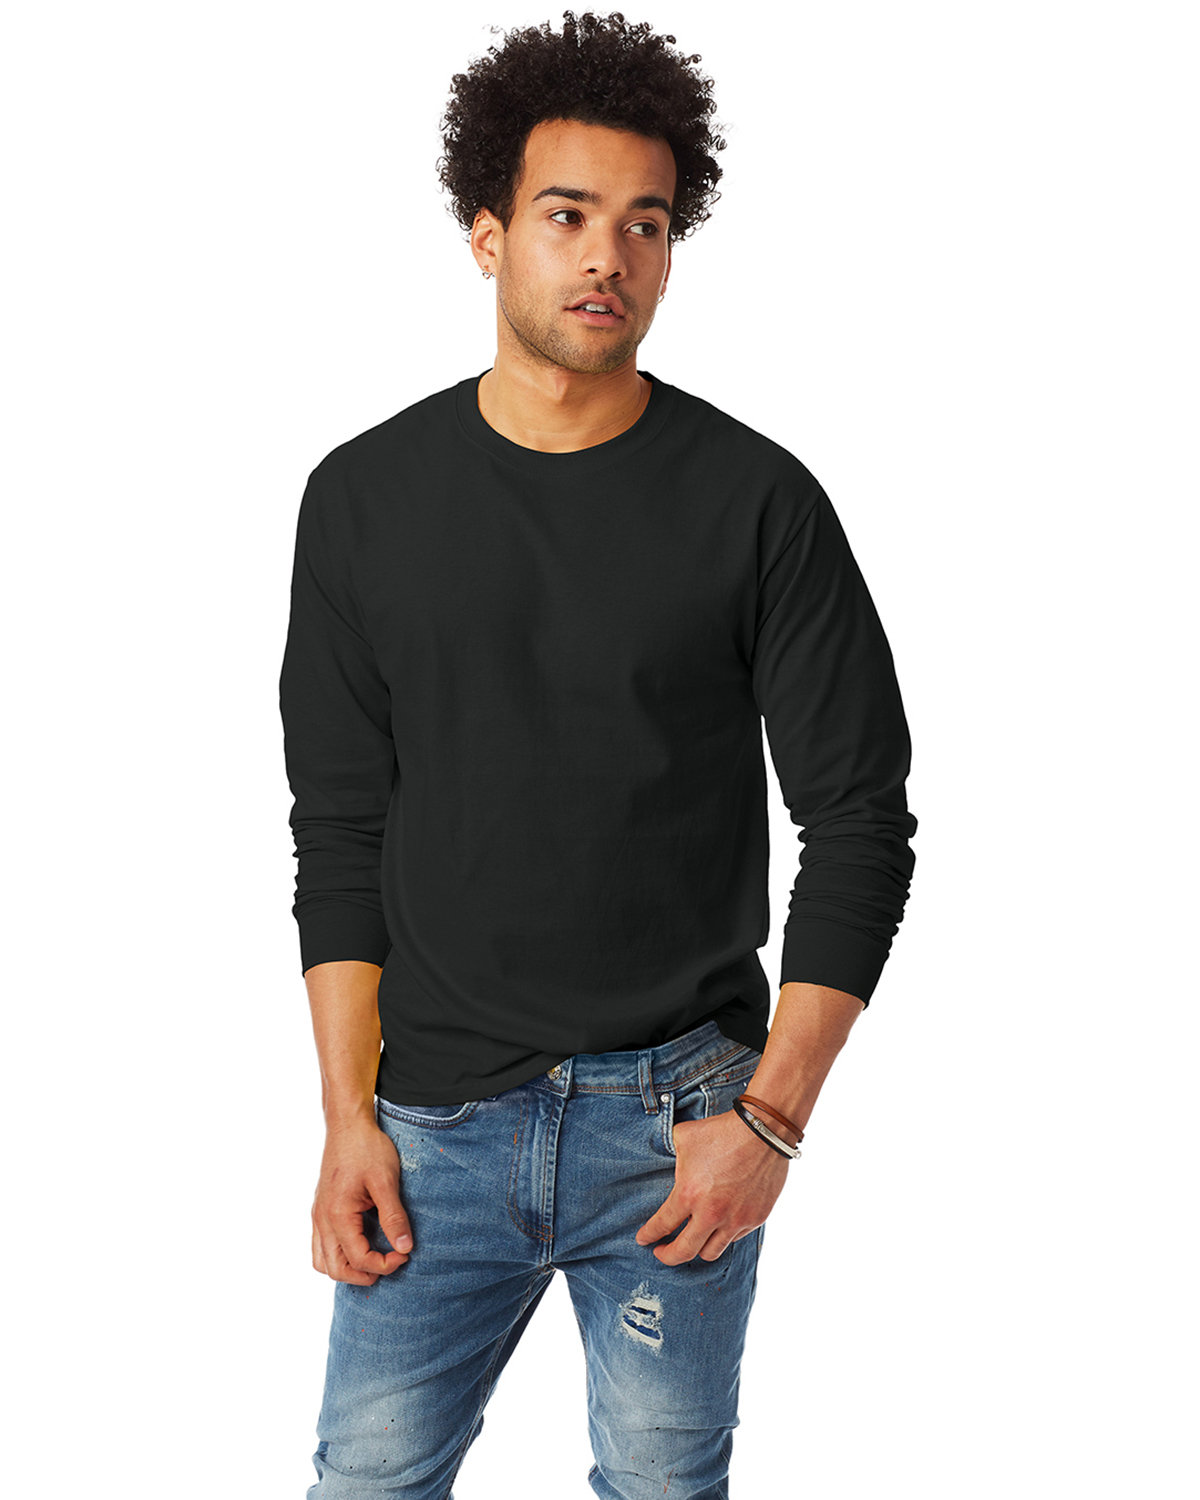 Hanes Adult Authentic-T Long-Sleeve T-Shirt BLACK